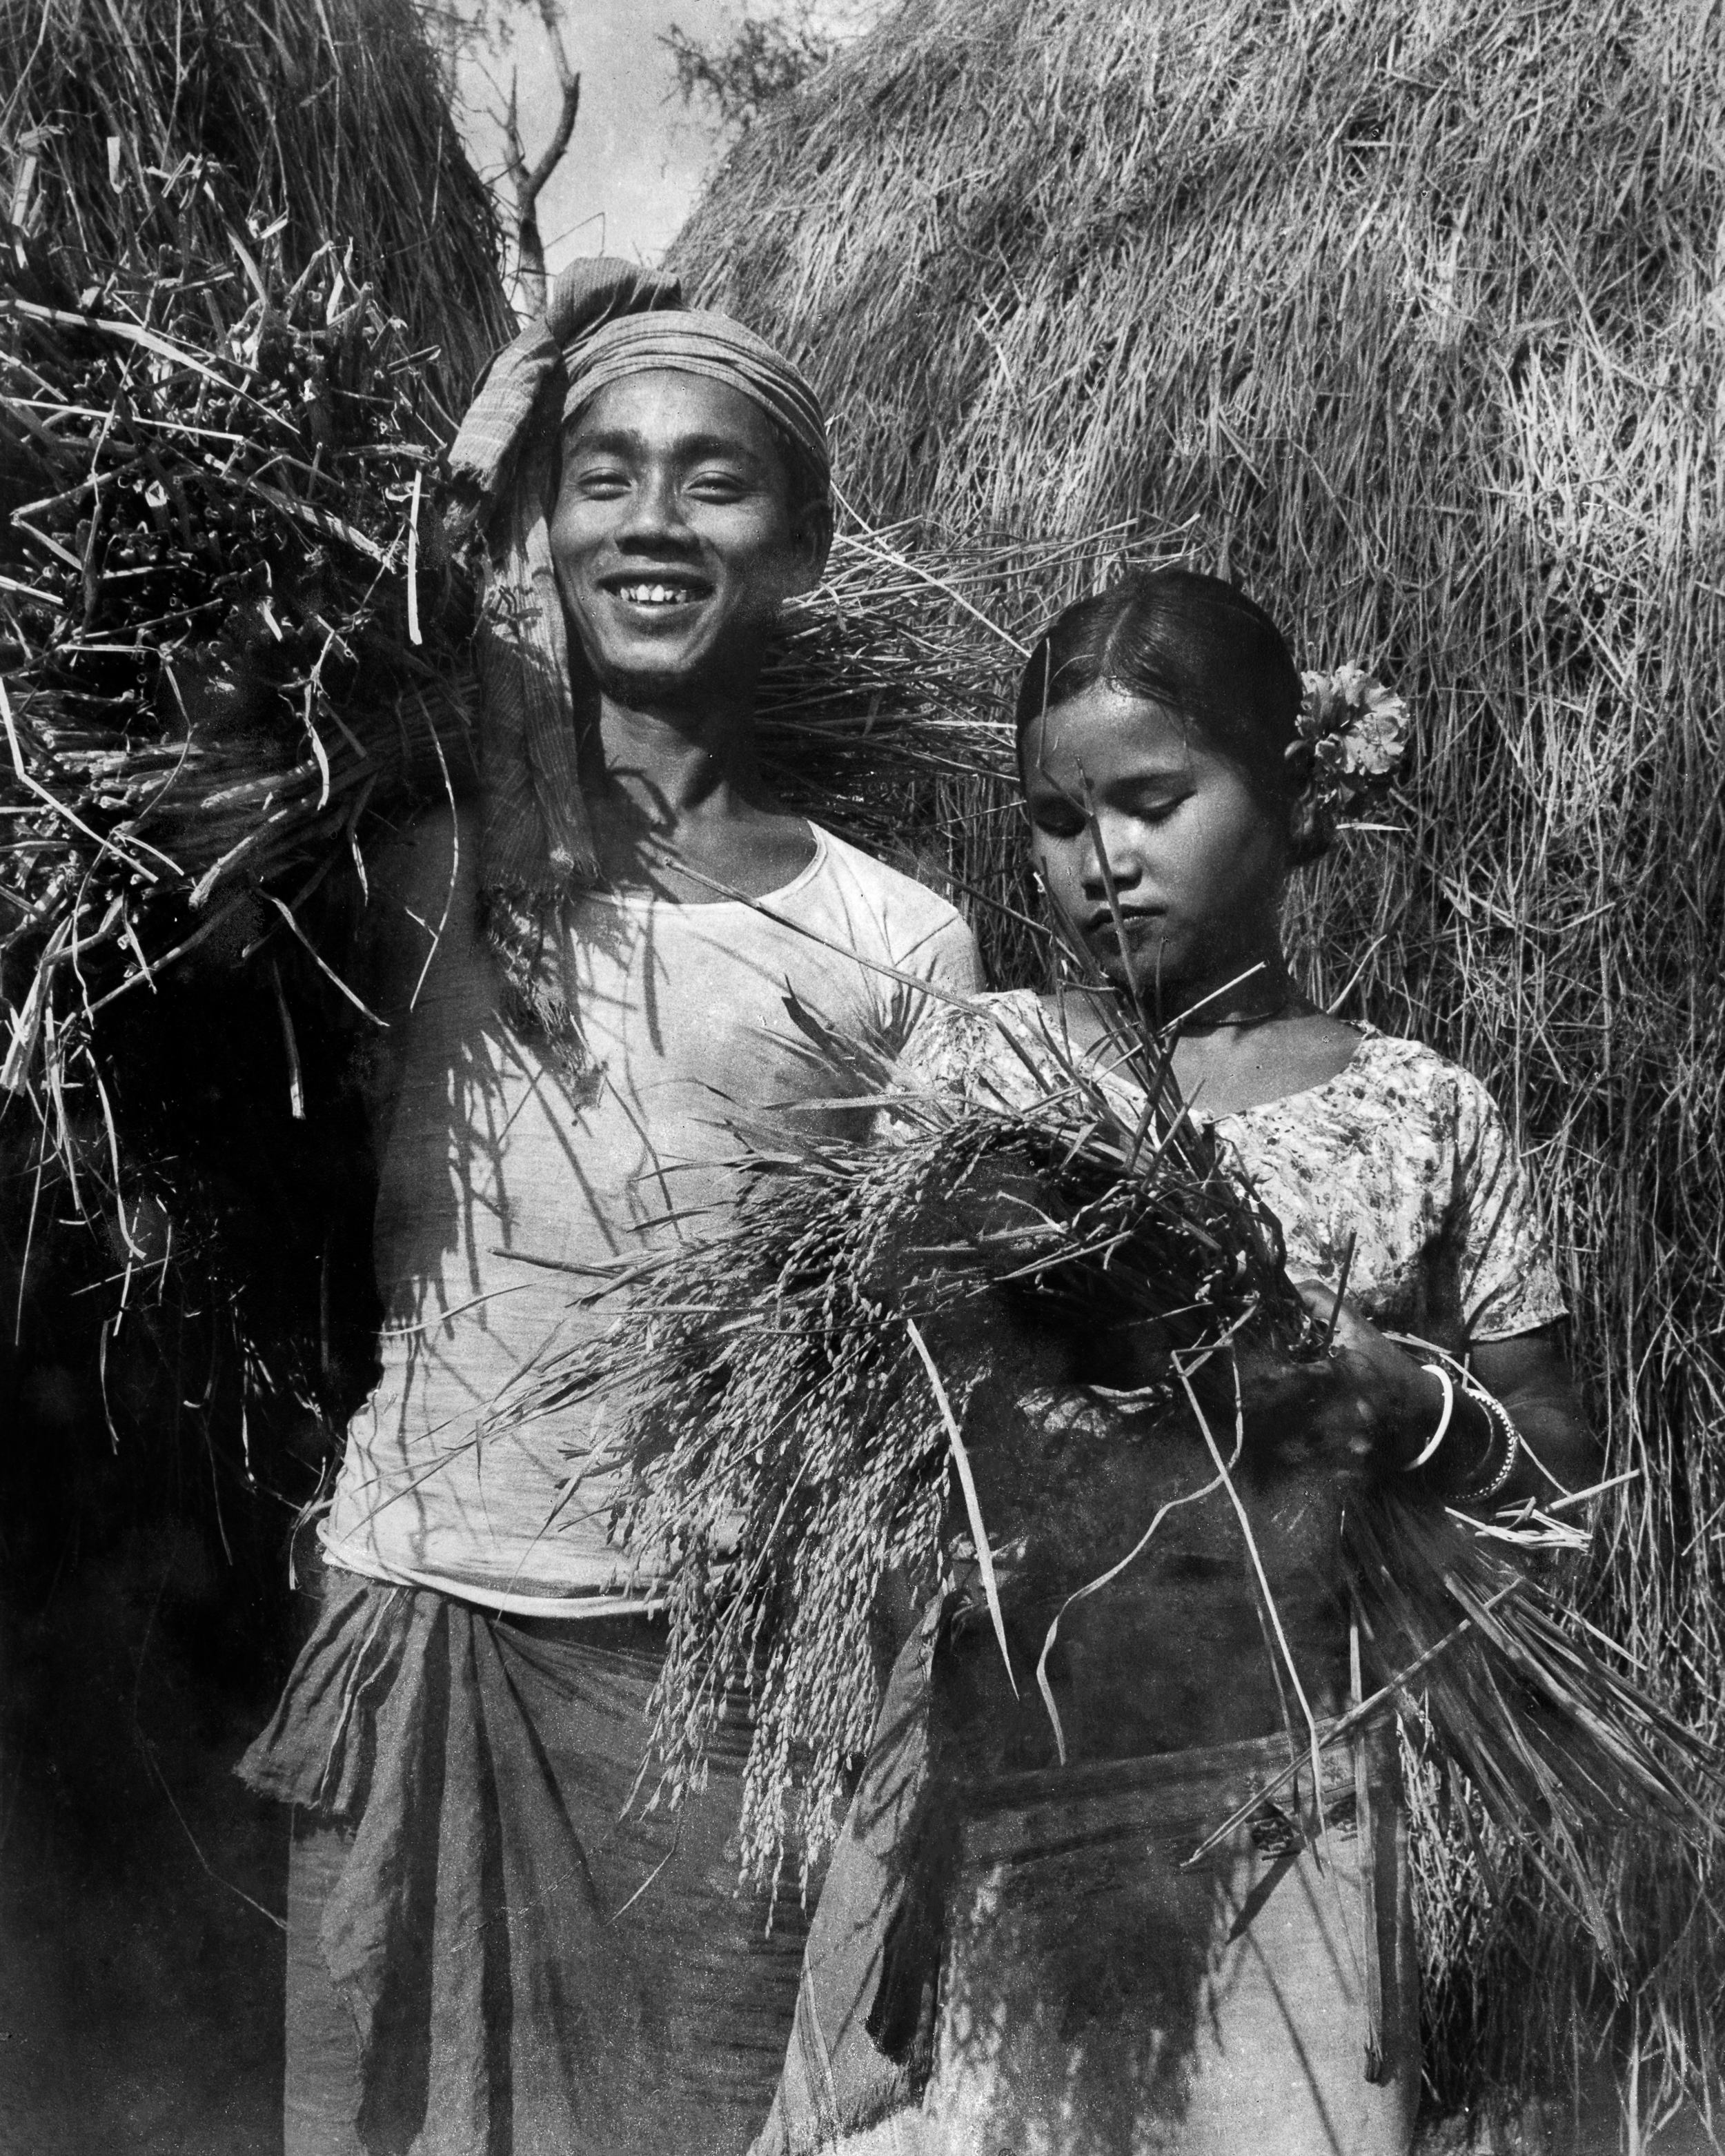 Mogh couple during harvest season with paddy collected from their rice fields. The woman wears a screen printed short blouse instead of a risha.  Maitang  or paddy is a common motif in Tripuri textiles.  c.1977